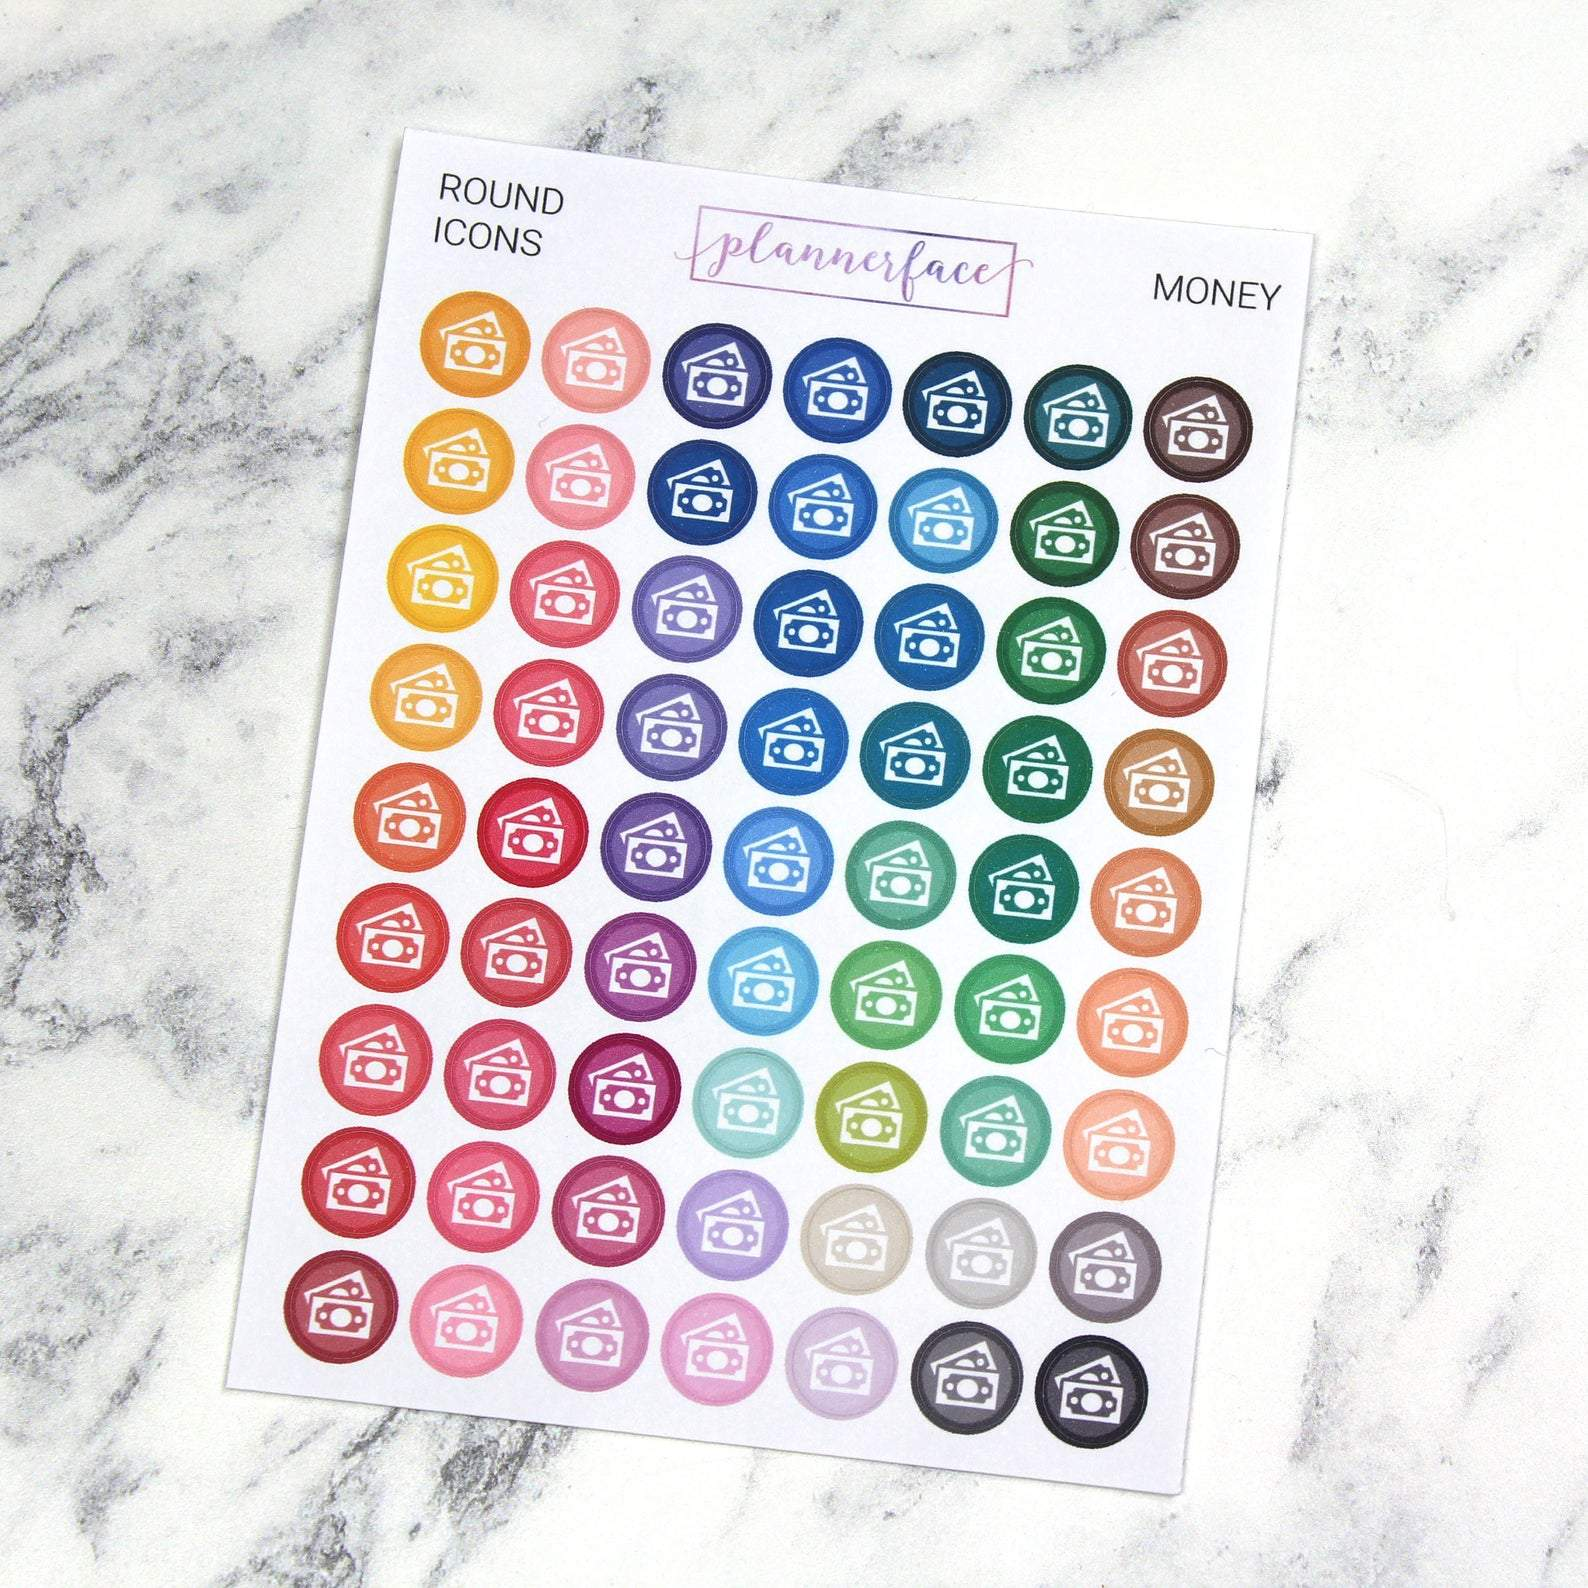 Plannerface Money | Round Multicolour Icons Planner Stickers